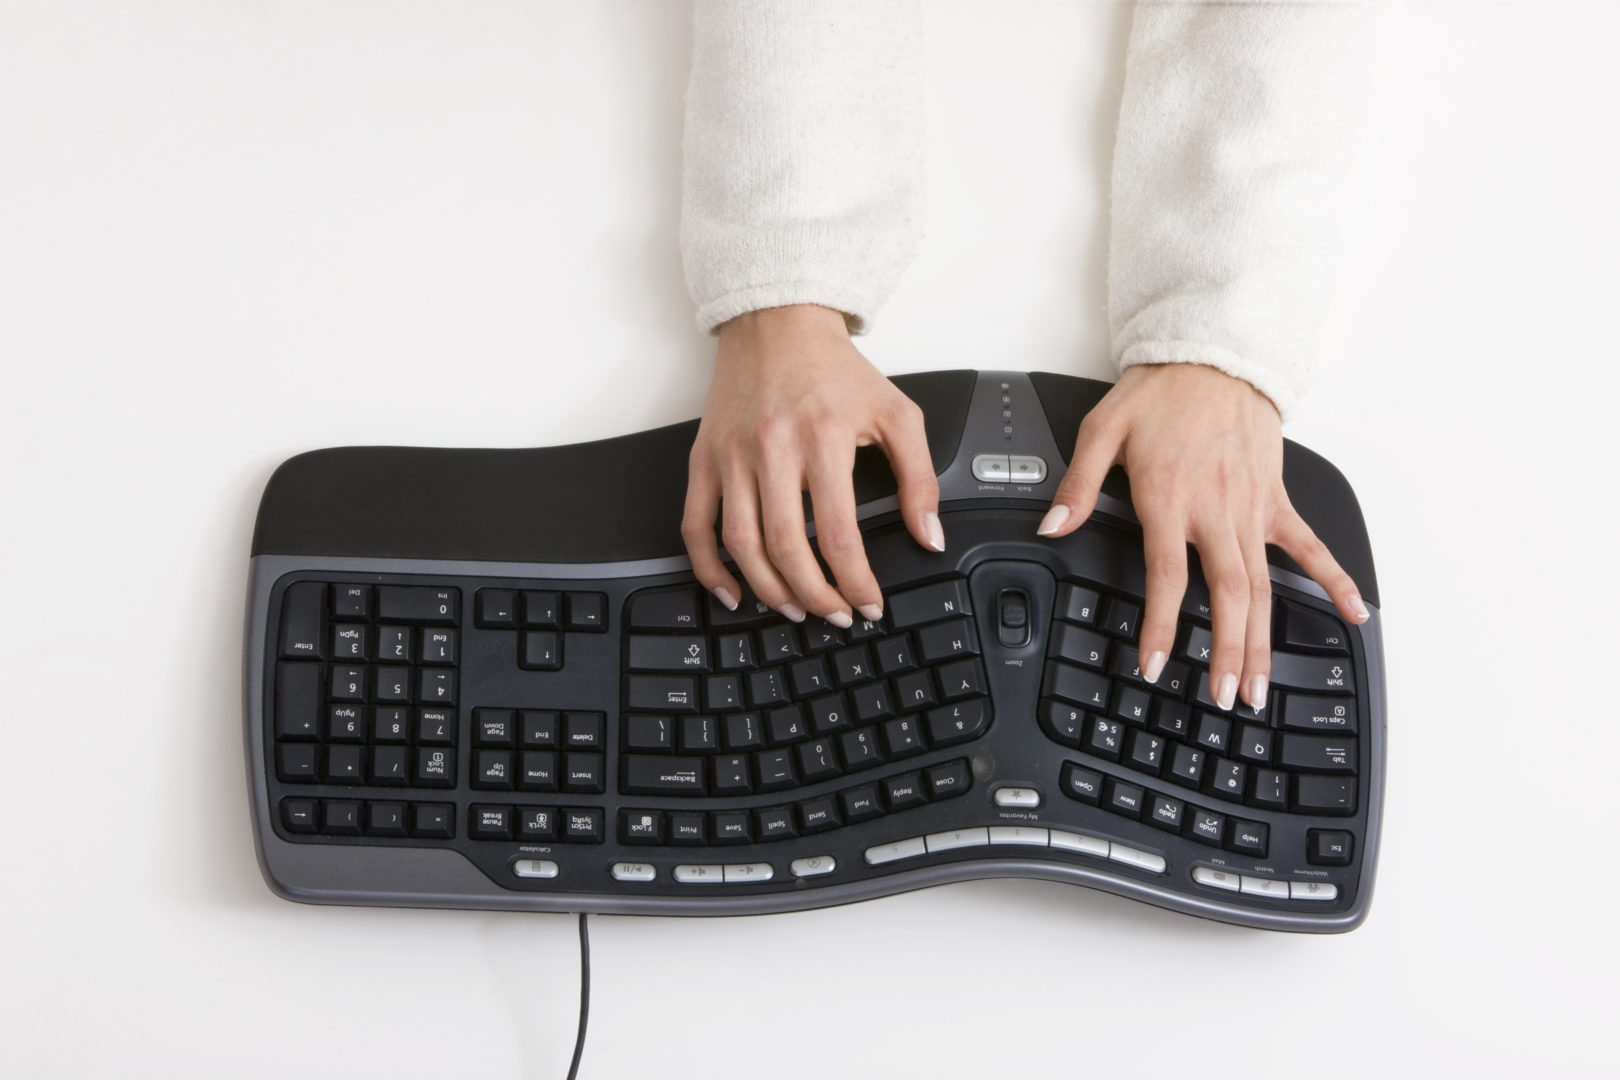 Ergonomic Products Your Employees Will Love